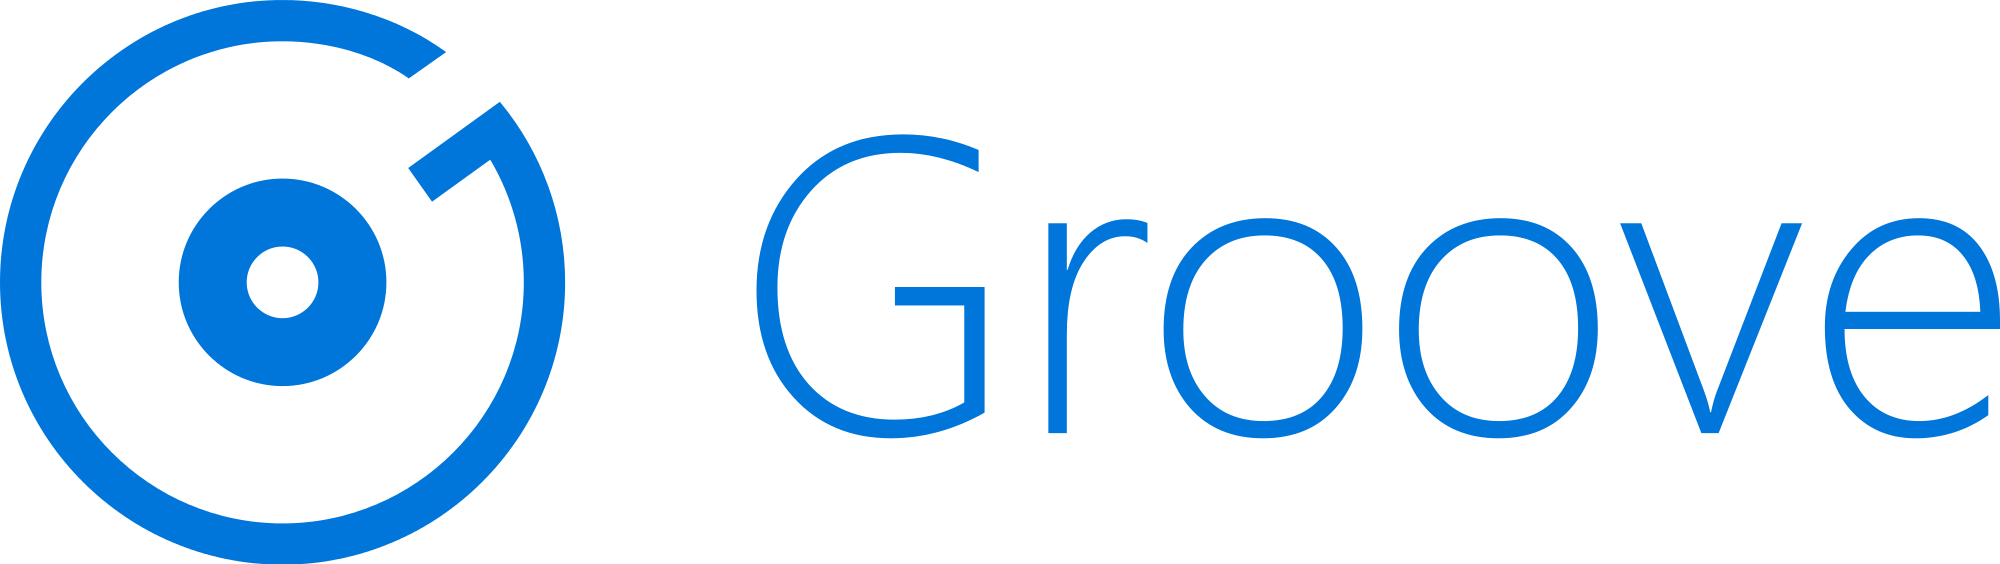 groove music logo png #2334